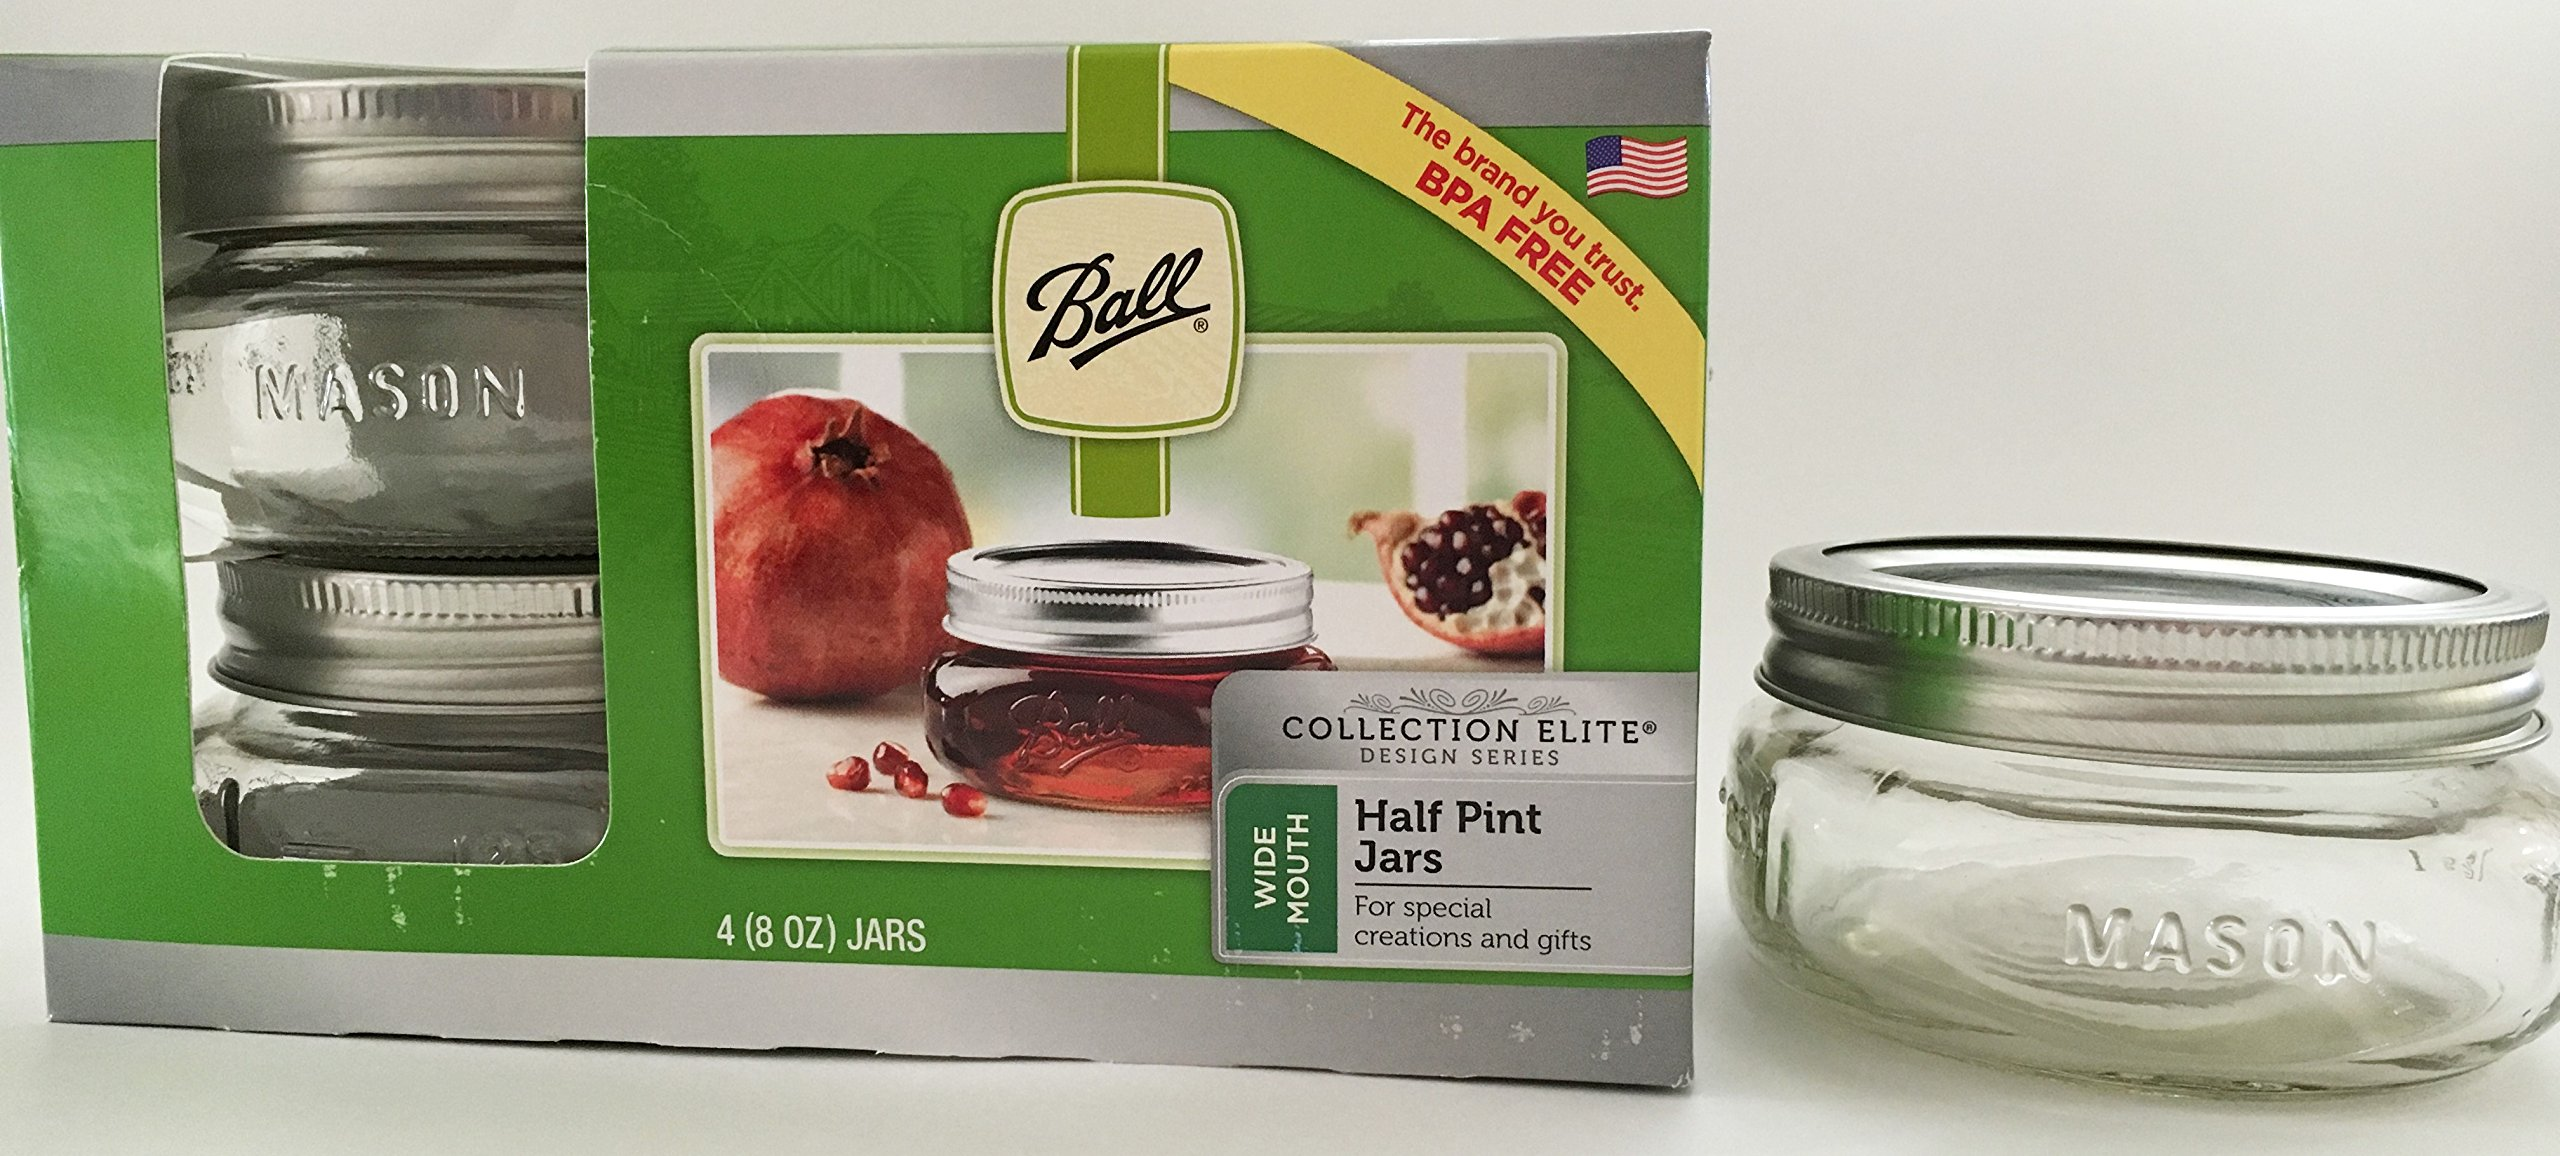 Mason Ball Jar-8 oz. Wide Mouth Squatty Collection Elite Series-Set of 4